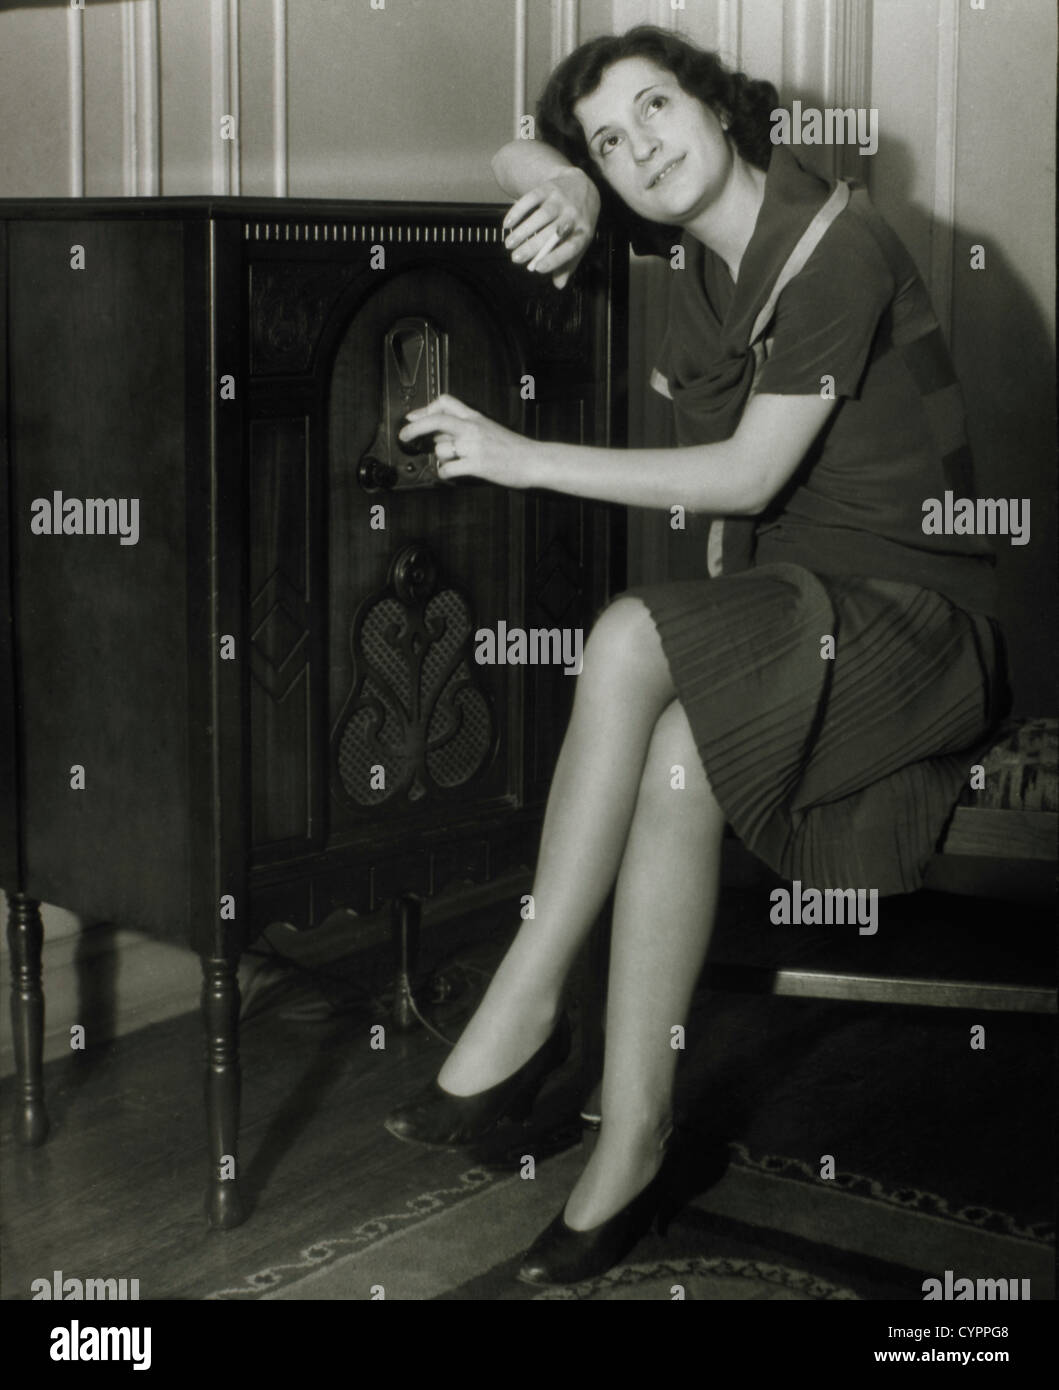 Woman Listening to Radio, 1930 - Stock Image